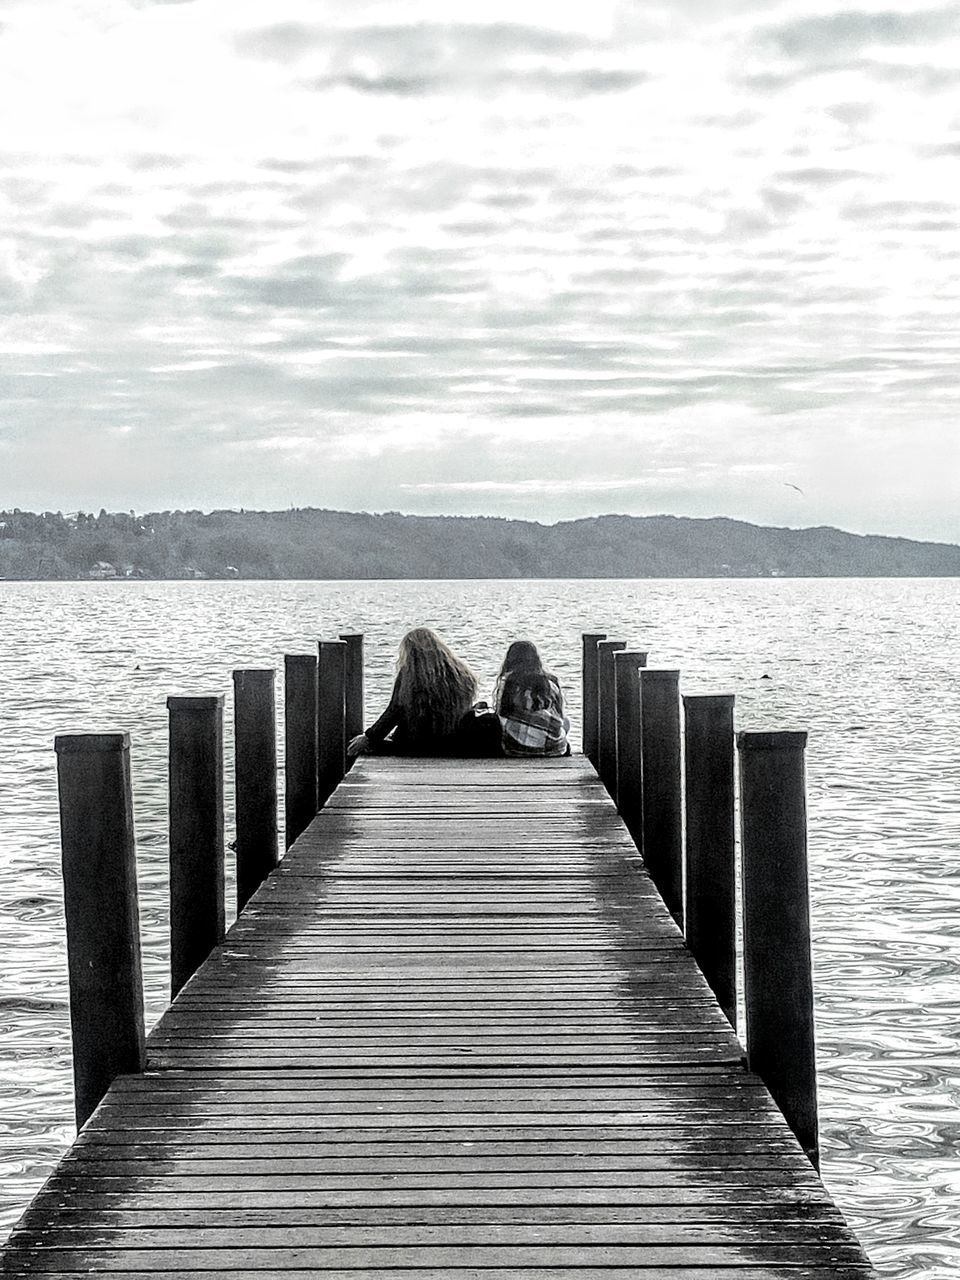 water, pier, sky, wood - material, beauty in nature, tranquil scene, scenics - nature, nature, real people, tranquility, day, sea, rear view, jetty, idyllic, direction, the way forward, cloud - sky, outdoors, wood, wood paneling